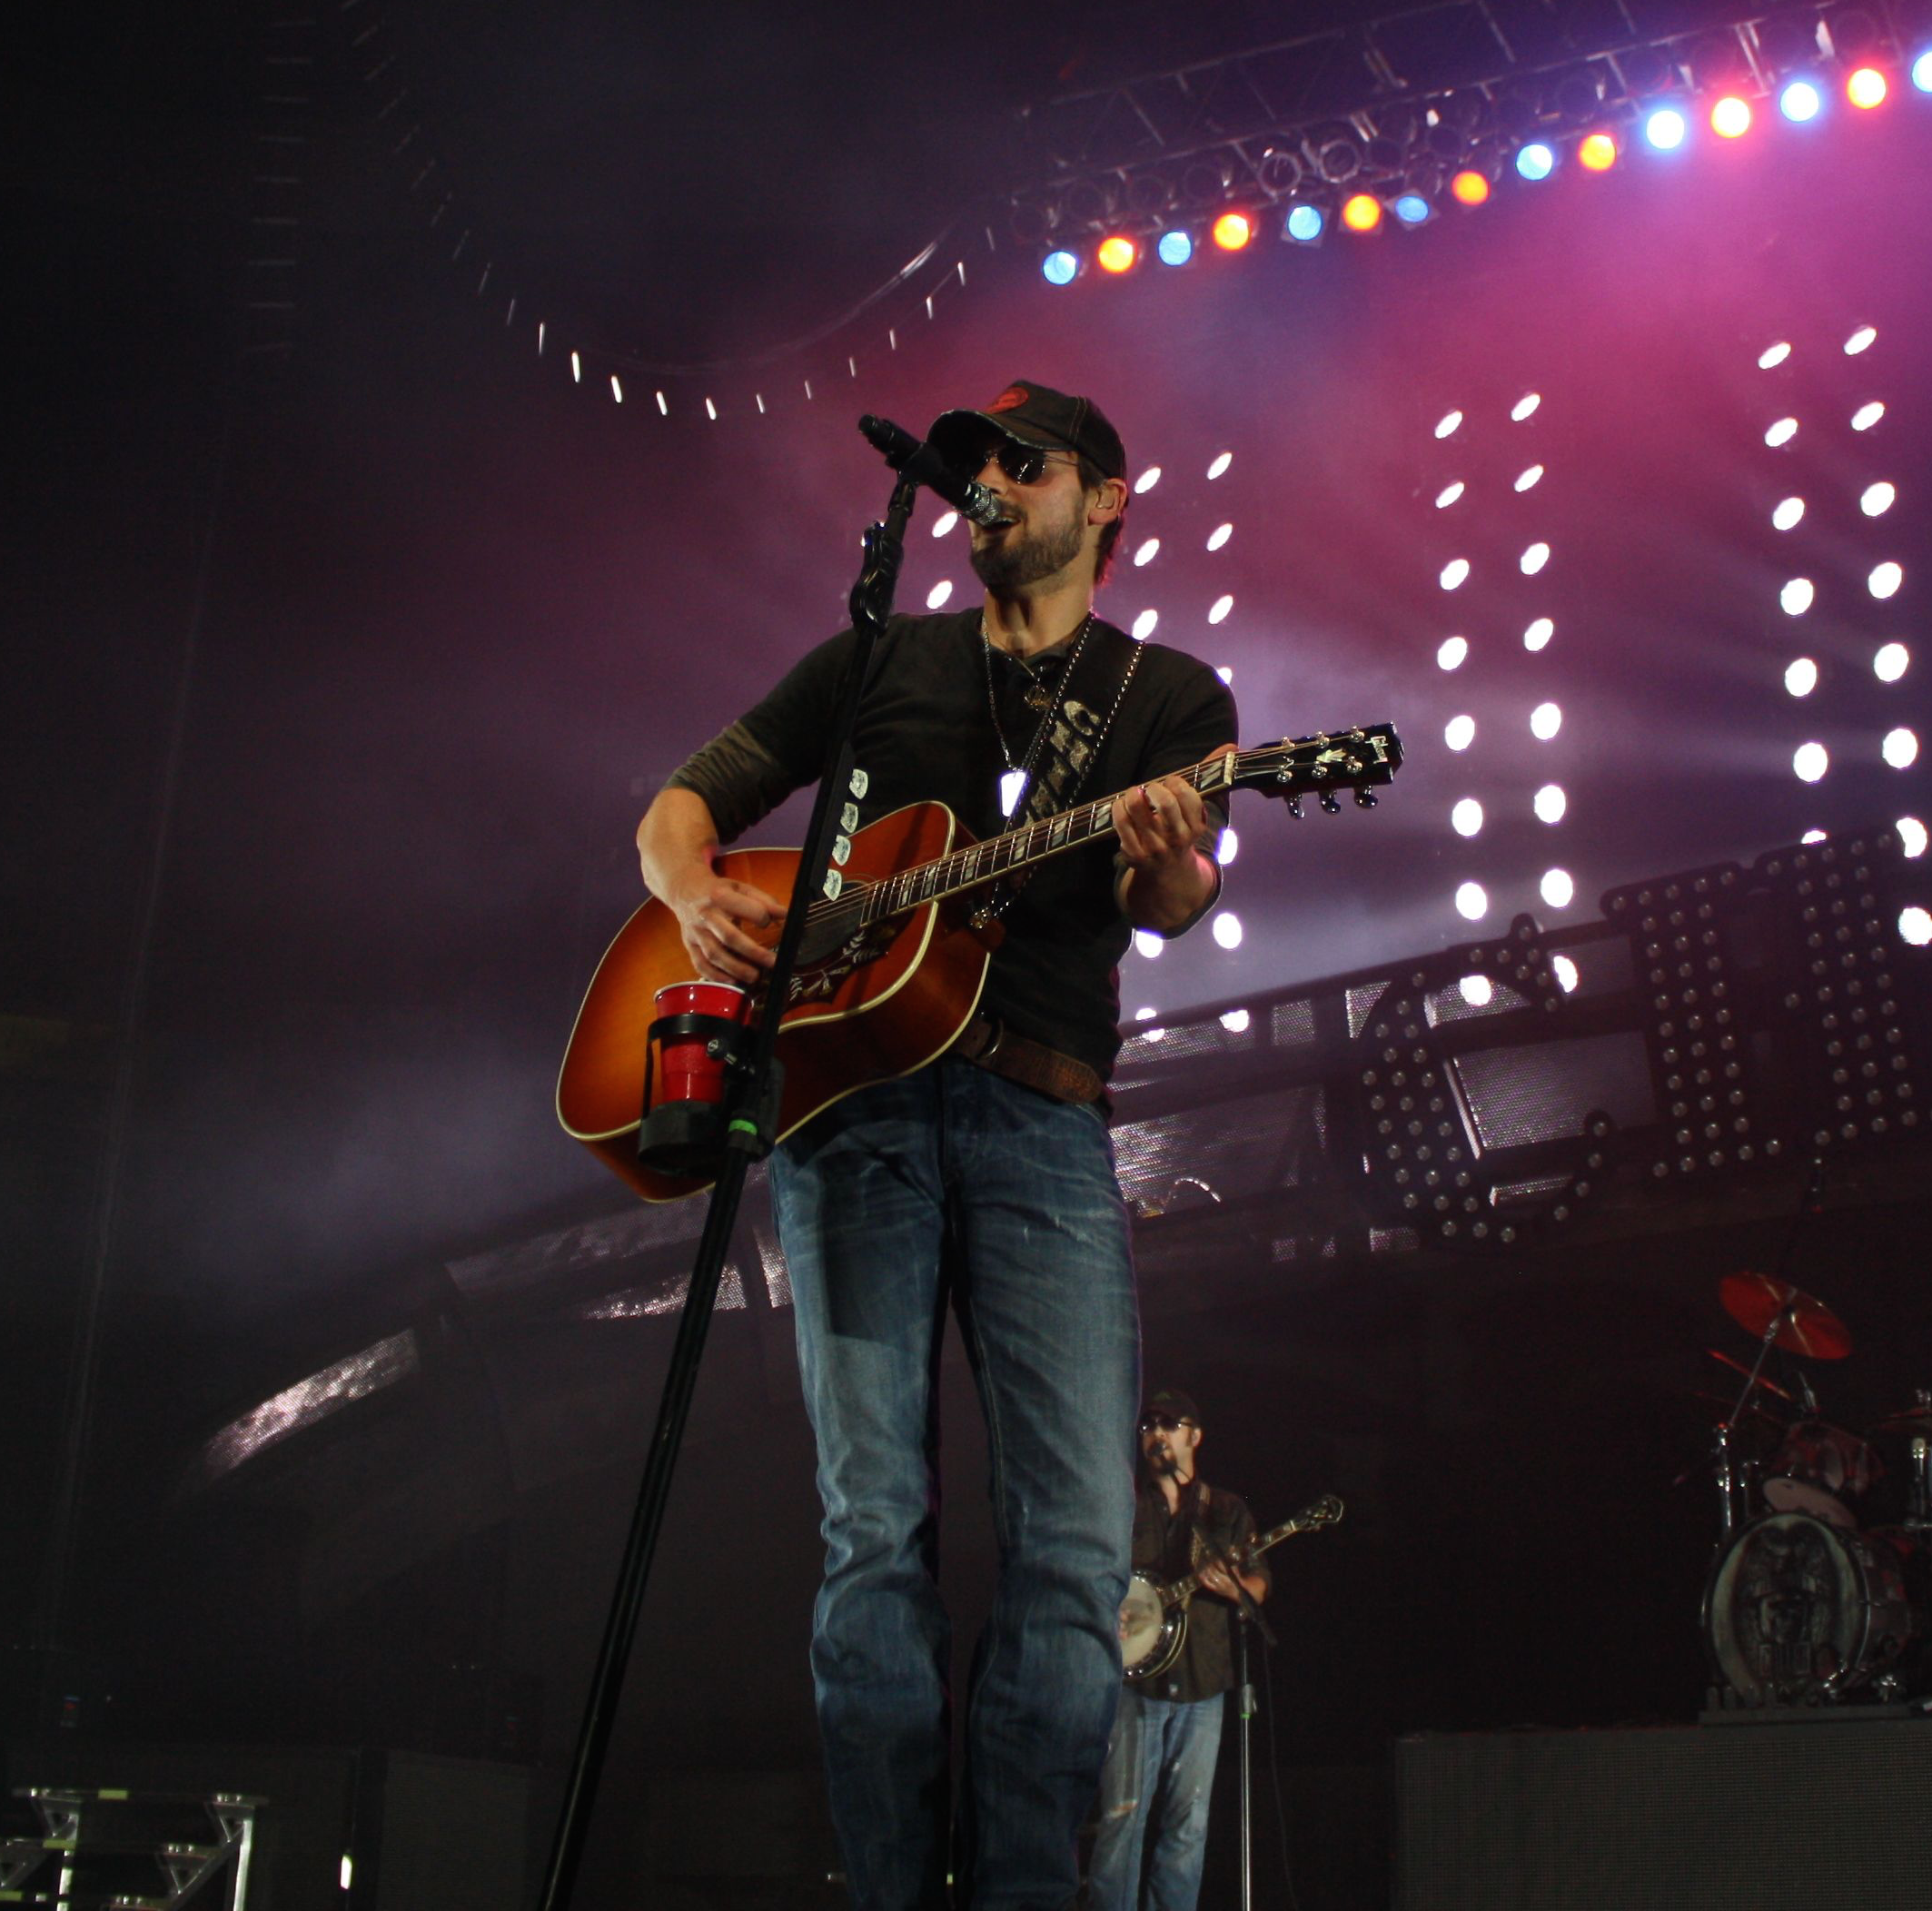 Eric Church live in concert - get your Eric Church tickets from www.VIPTicketsCanada.ca today!